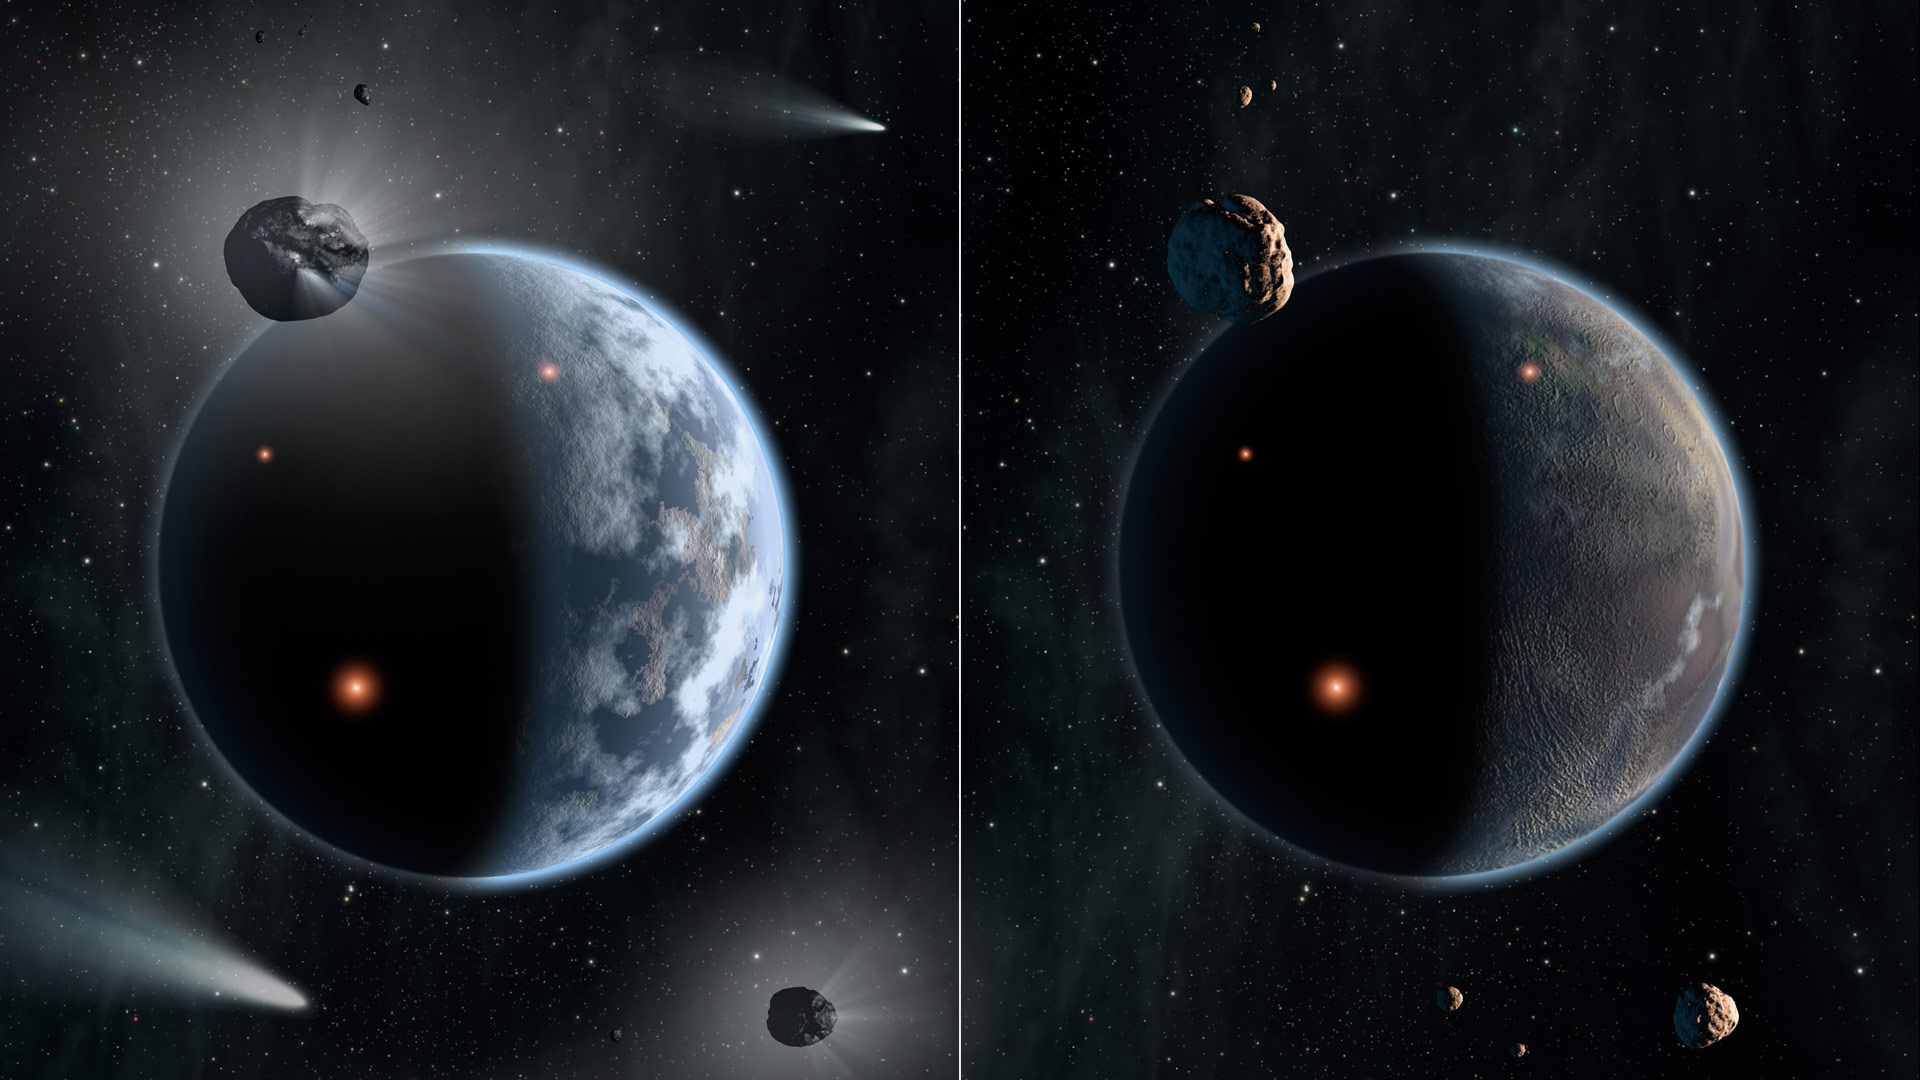 NASA Study Reveals that Carbon Planets May be Waterless